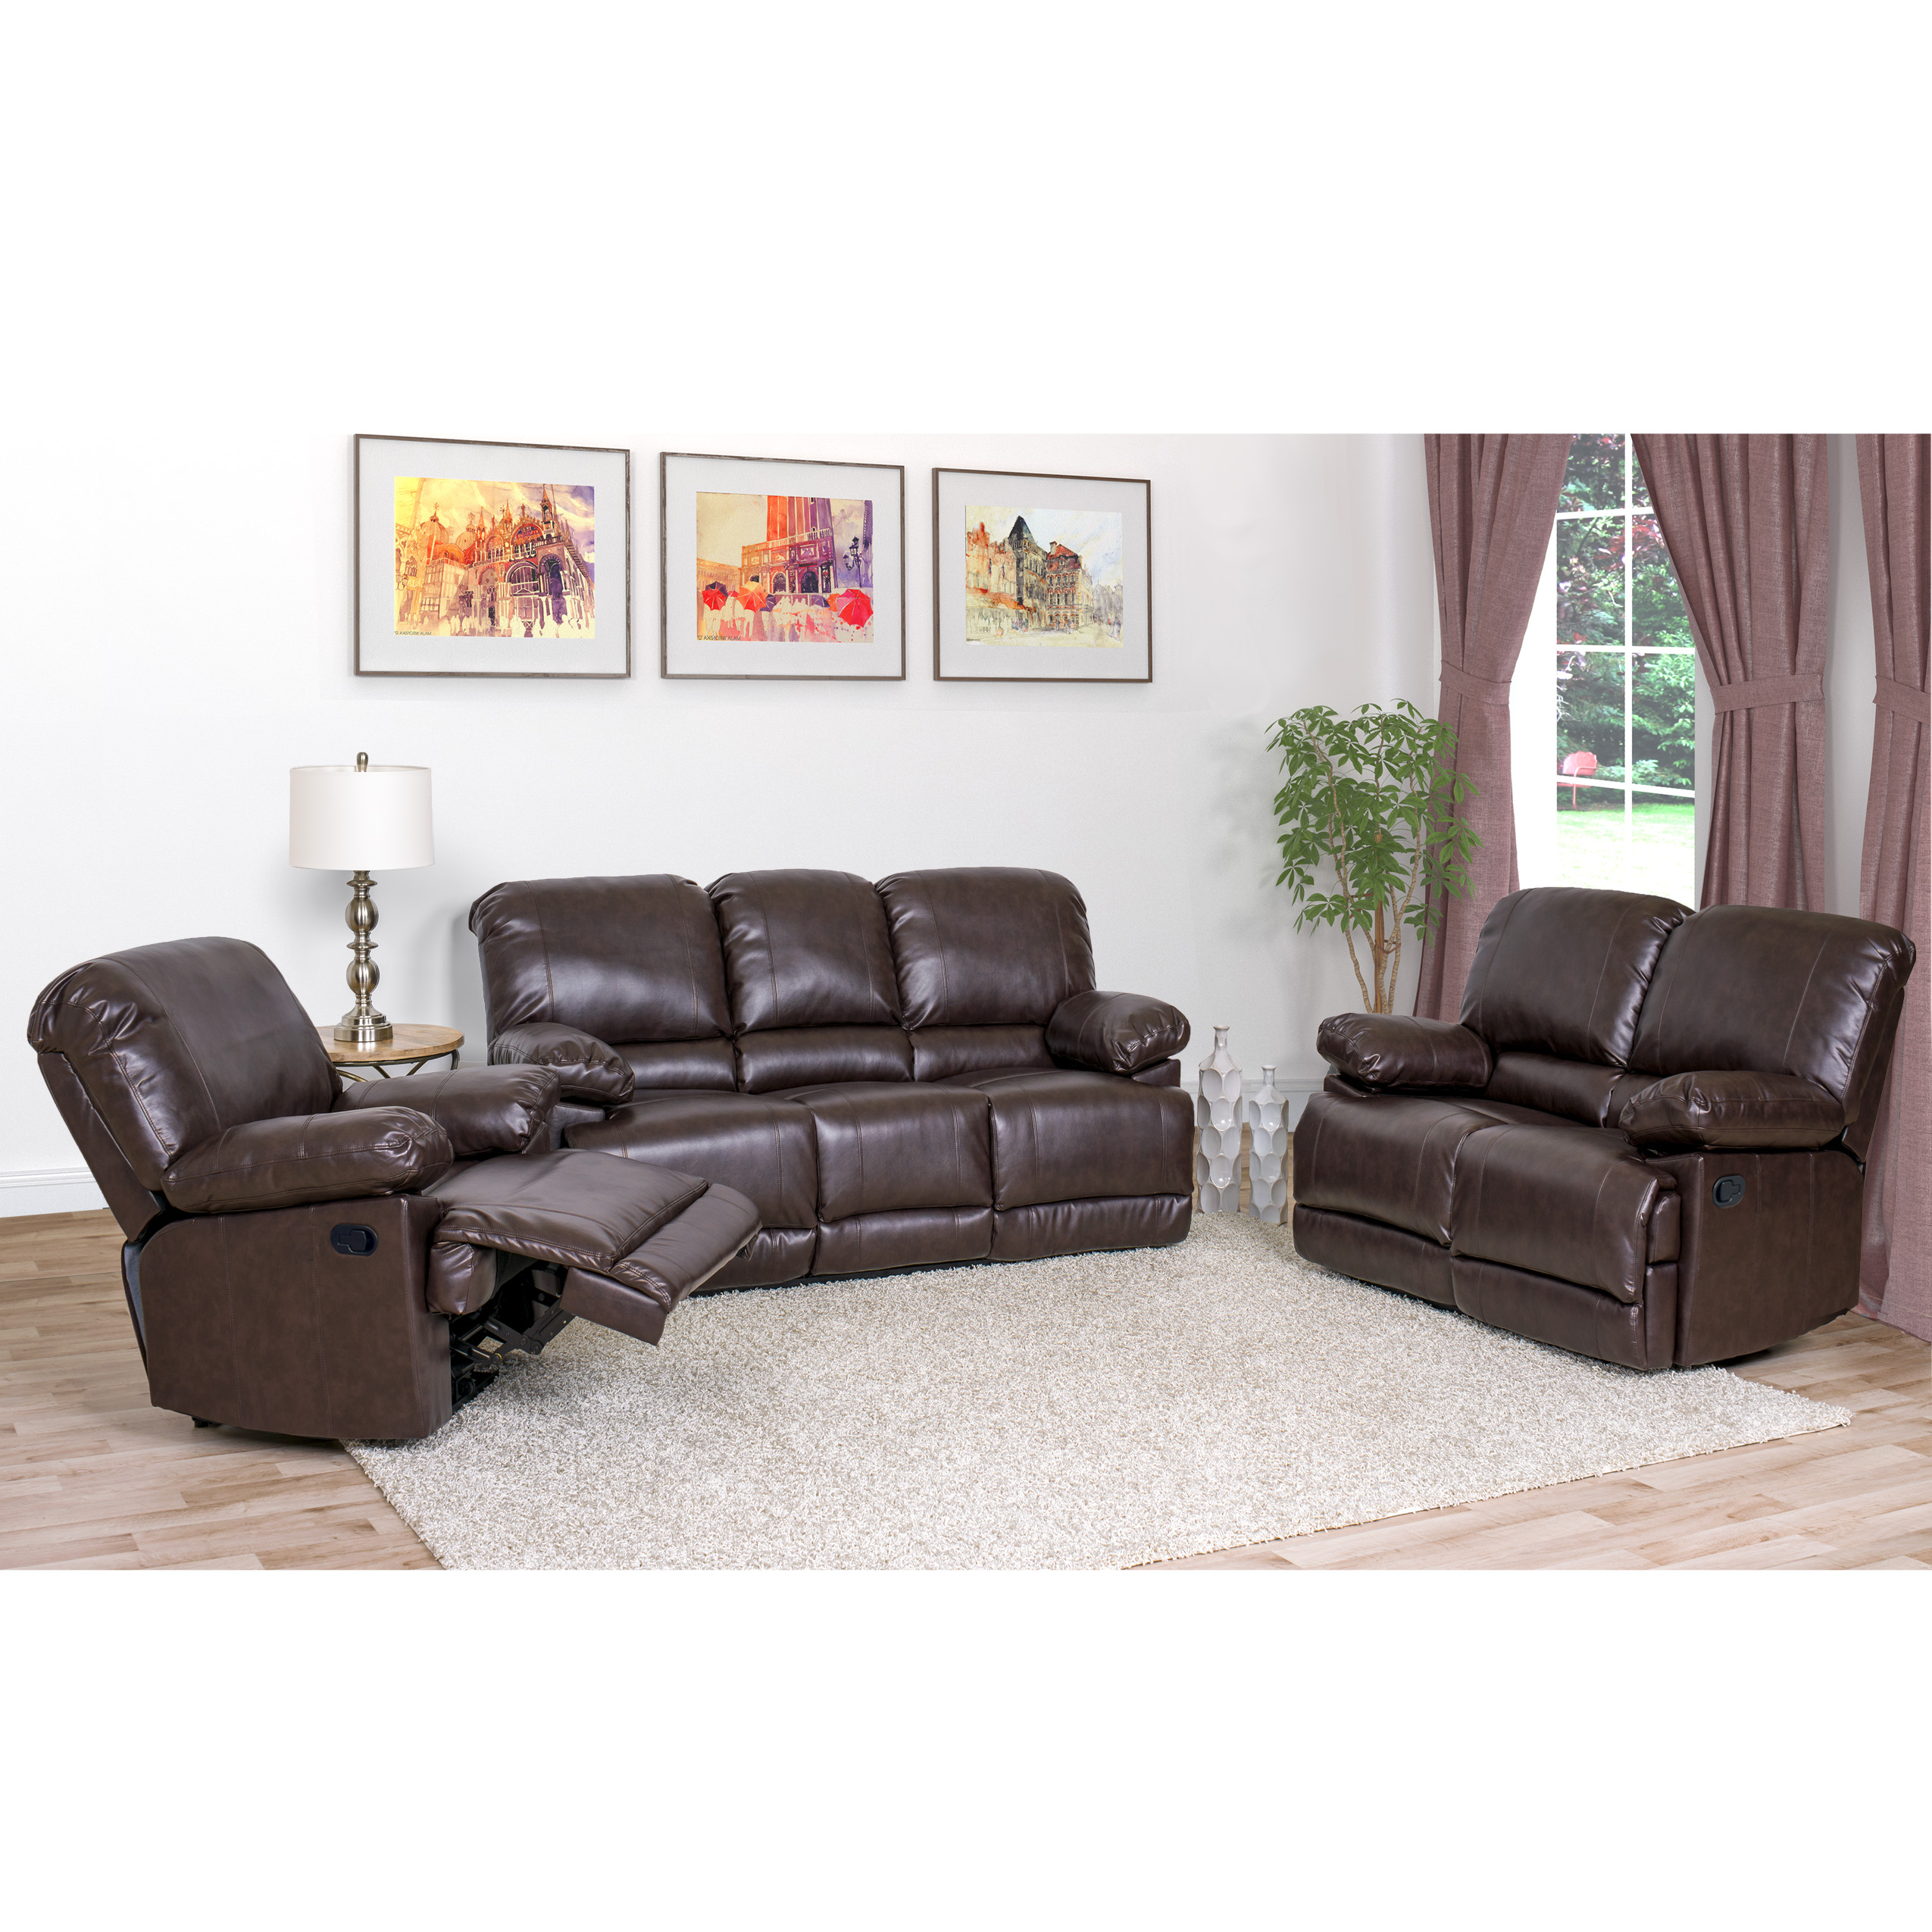 Corliving 3pc Bonded Leather Reclining Sofa Set